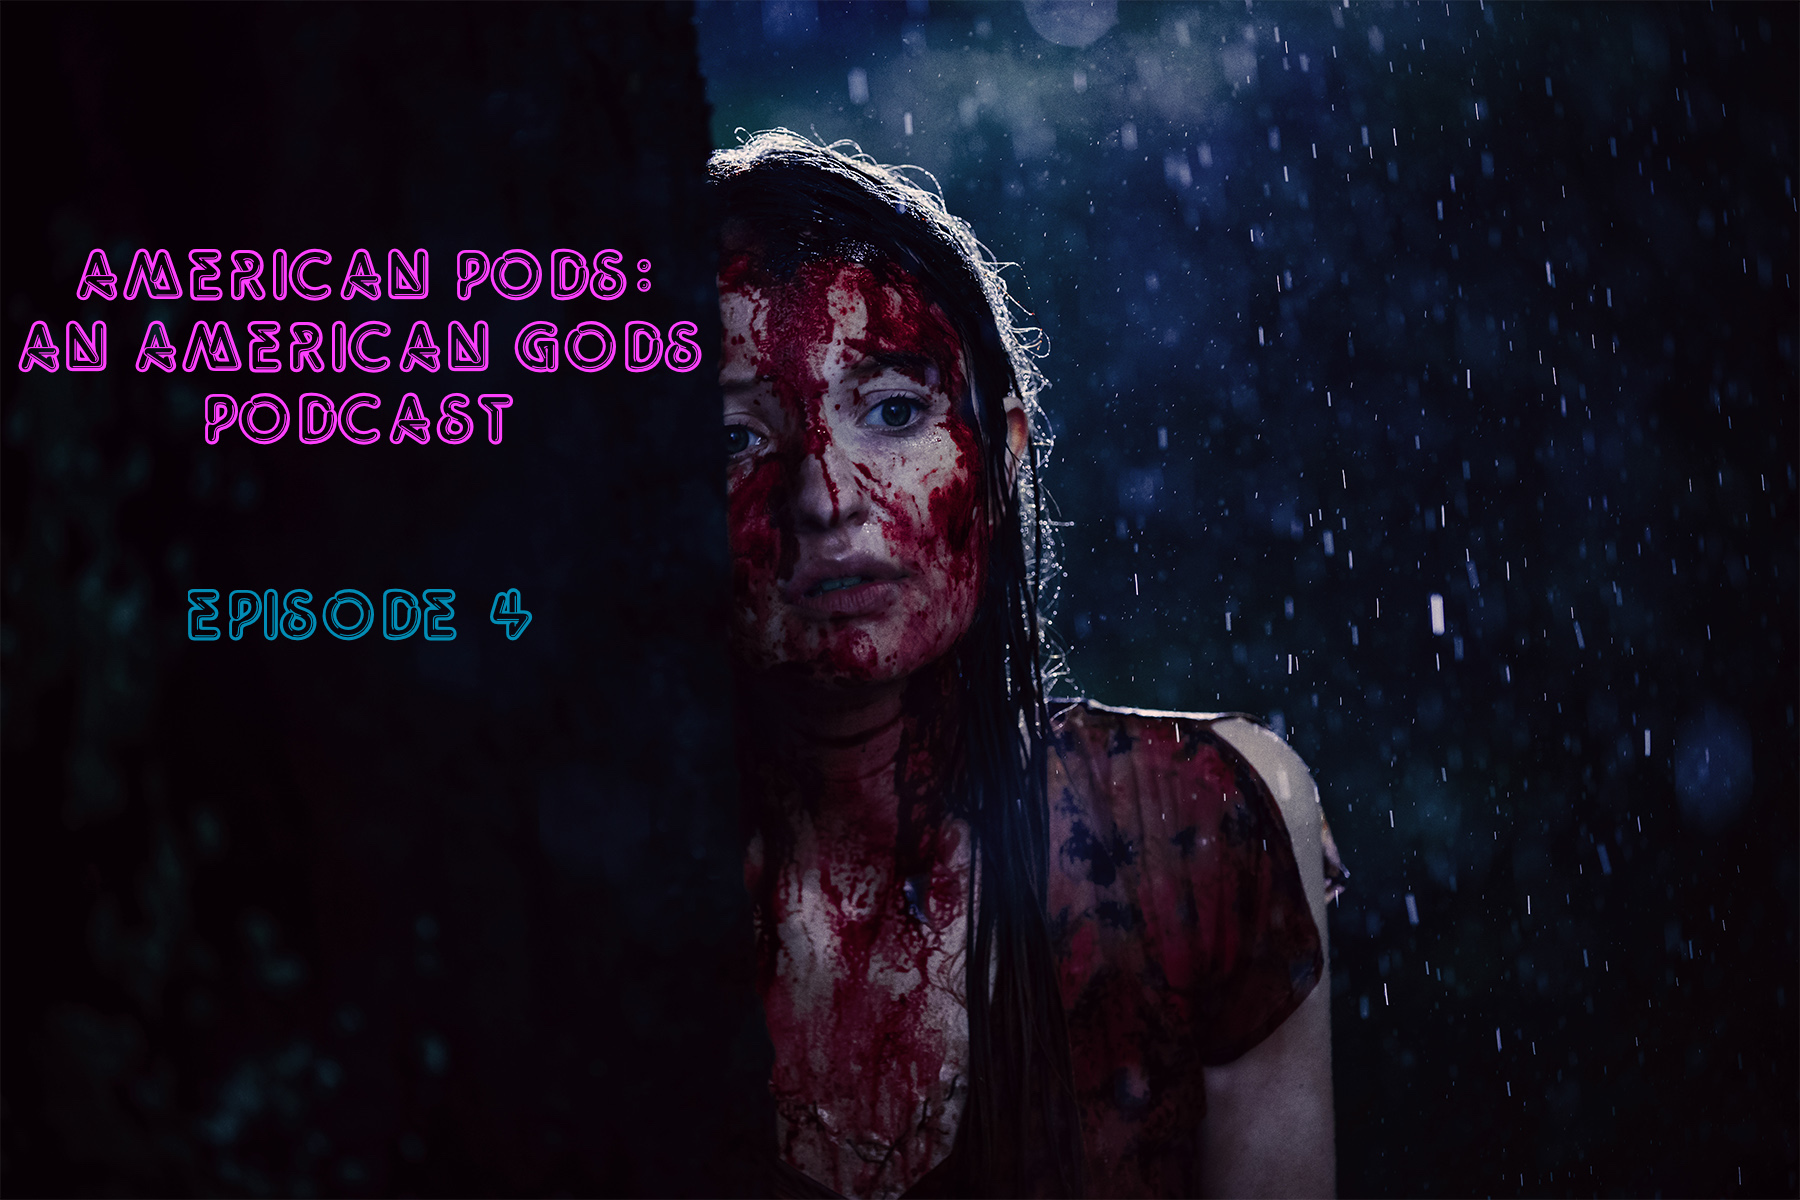 American Pods: An American Gods Podcast, Ep. 4 - Dead Wife